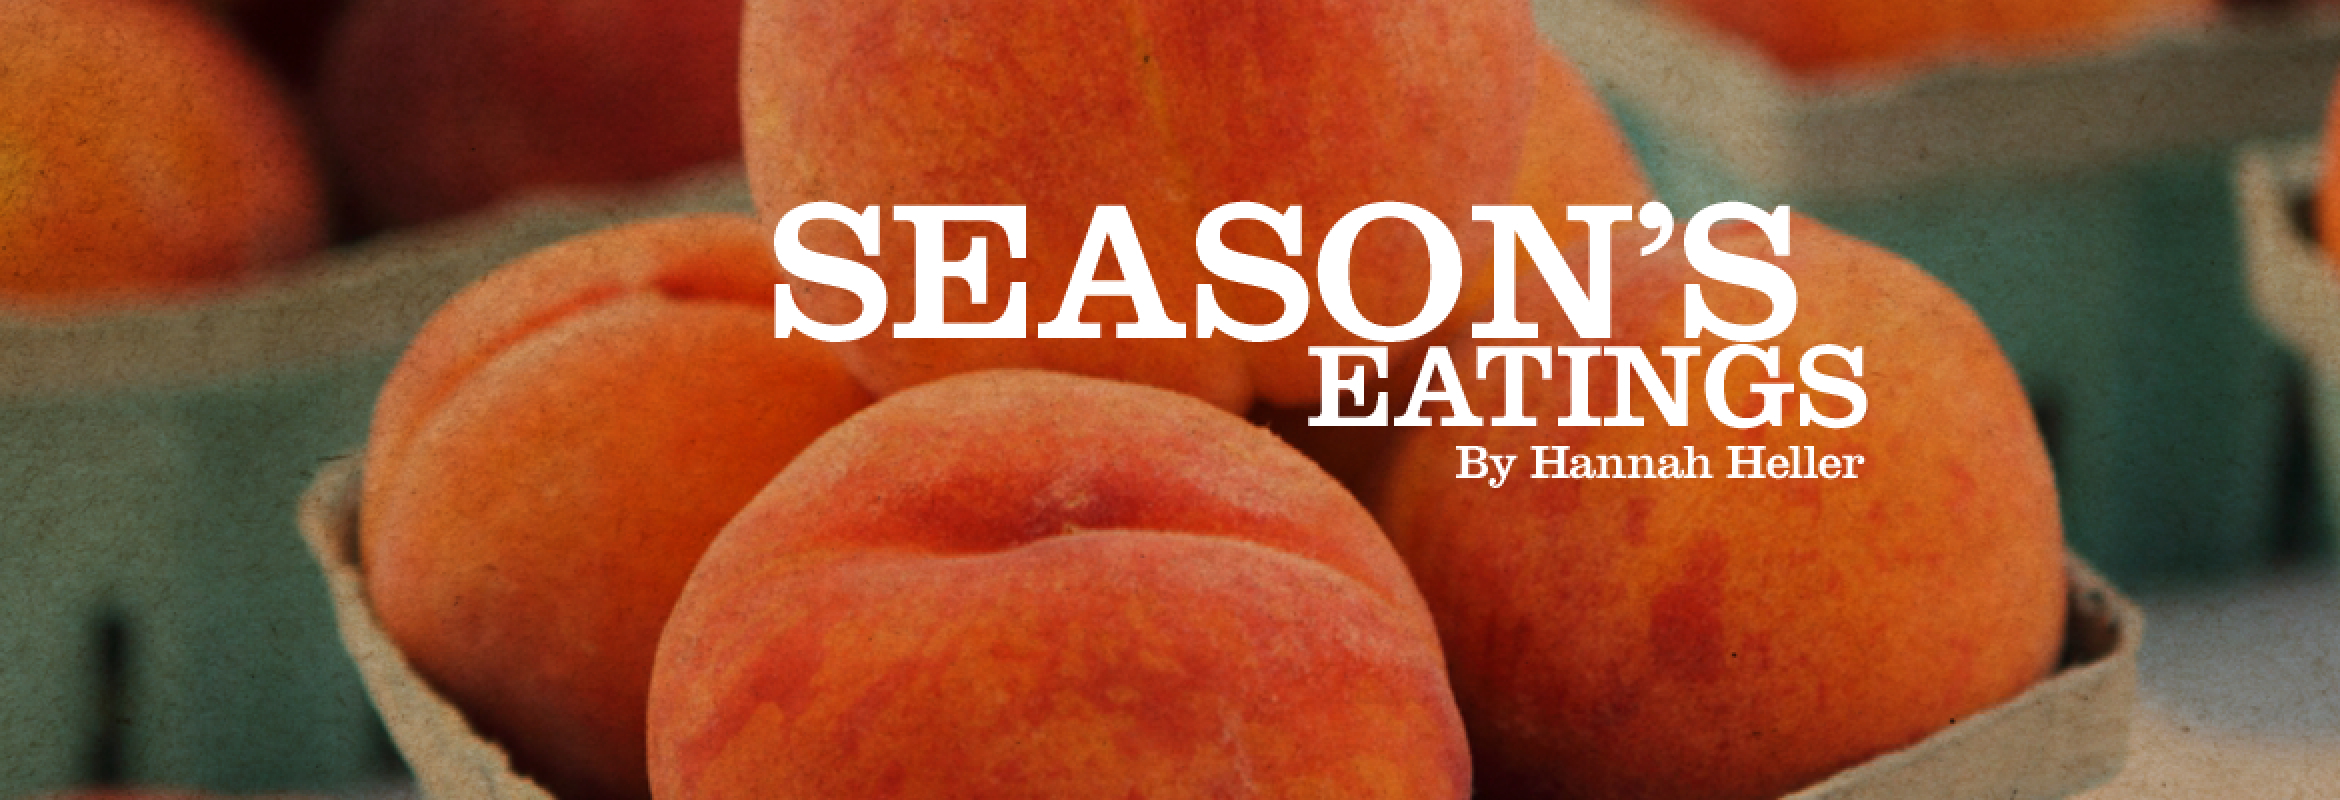 seasons-eatings-by-hannah-heller@2x.jpg